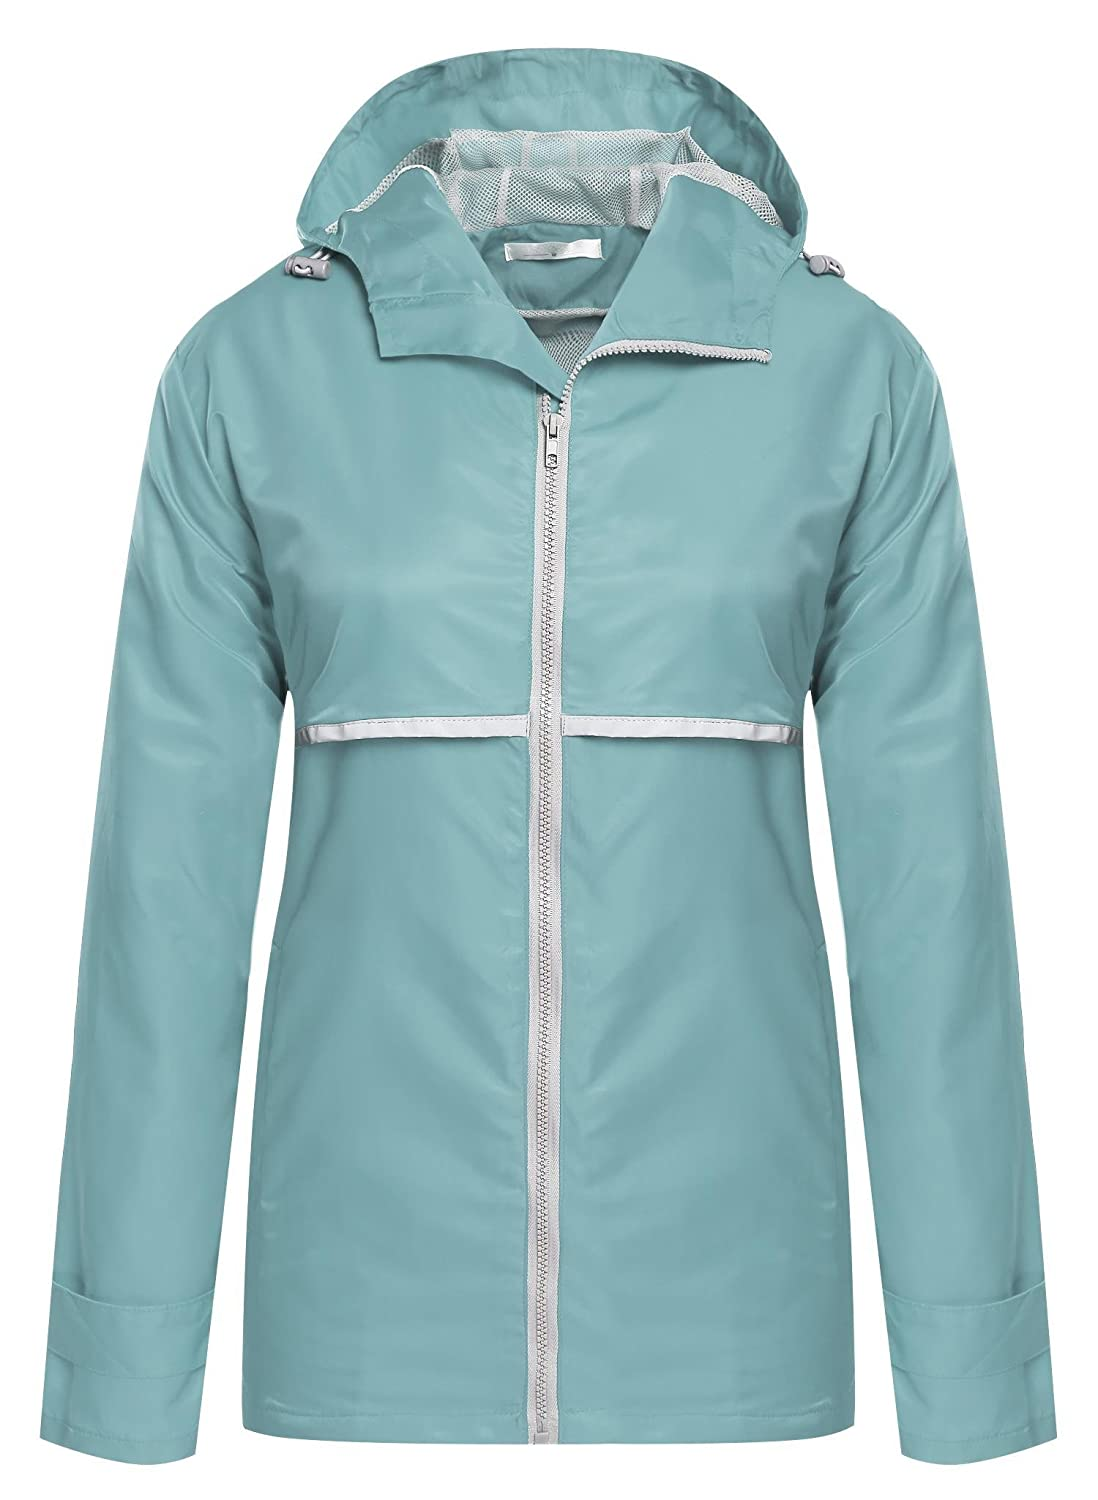 ELESOL Women's Waterproof Raincoat Outdoor Hooded Rain Jacket Windbreaker ELH005134#